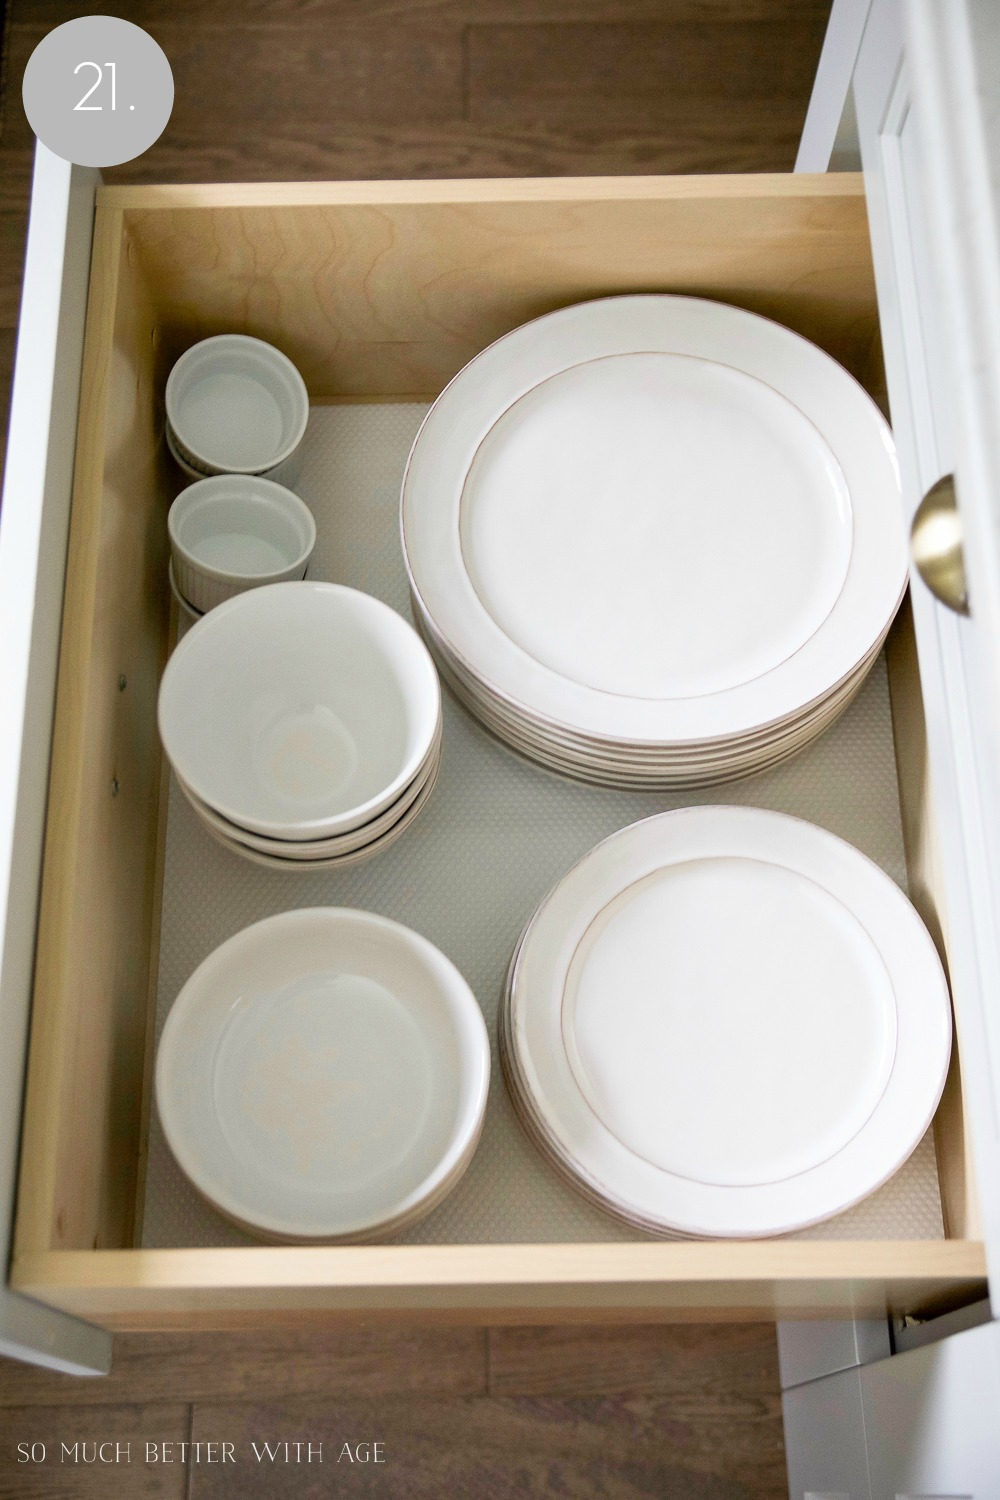 Kitchen cupboard and drawer organization / bowls and ramekins in drawer - So Much Better With Age